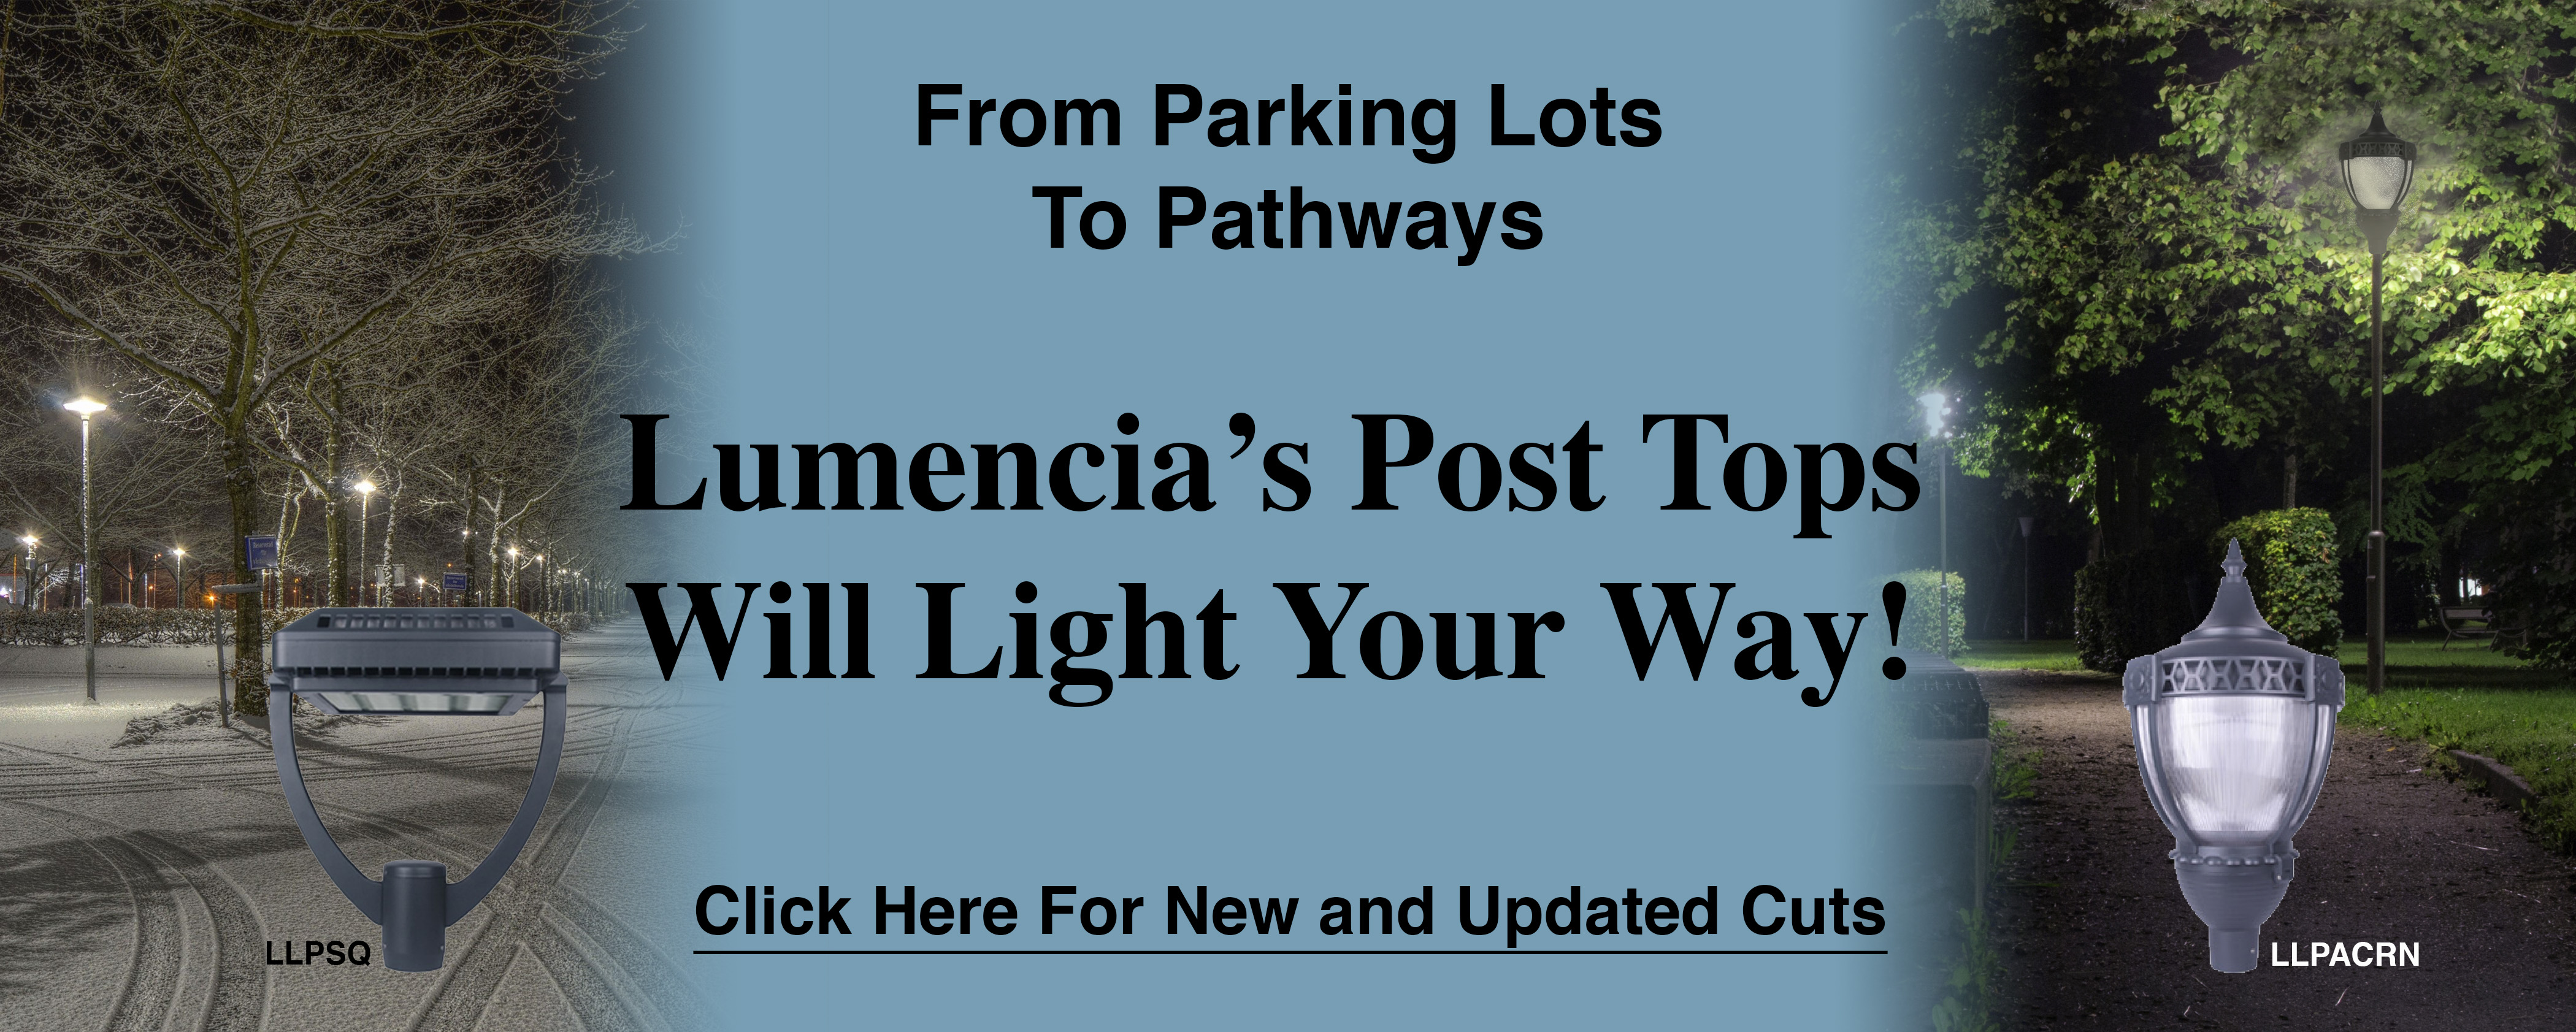 Lumencia's Post Tops Will Light Your Way!